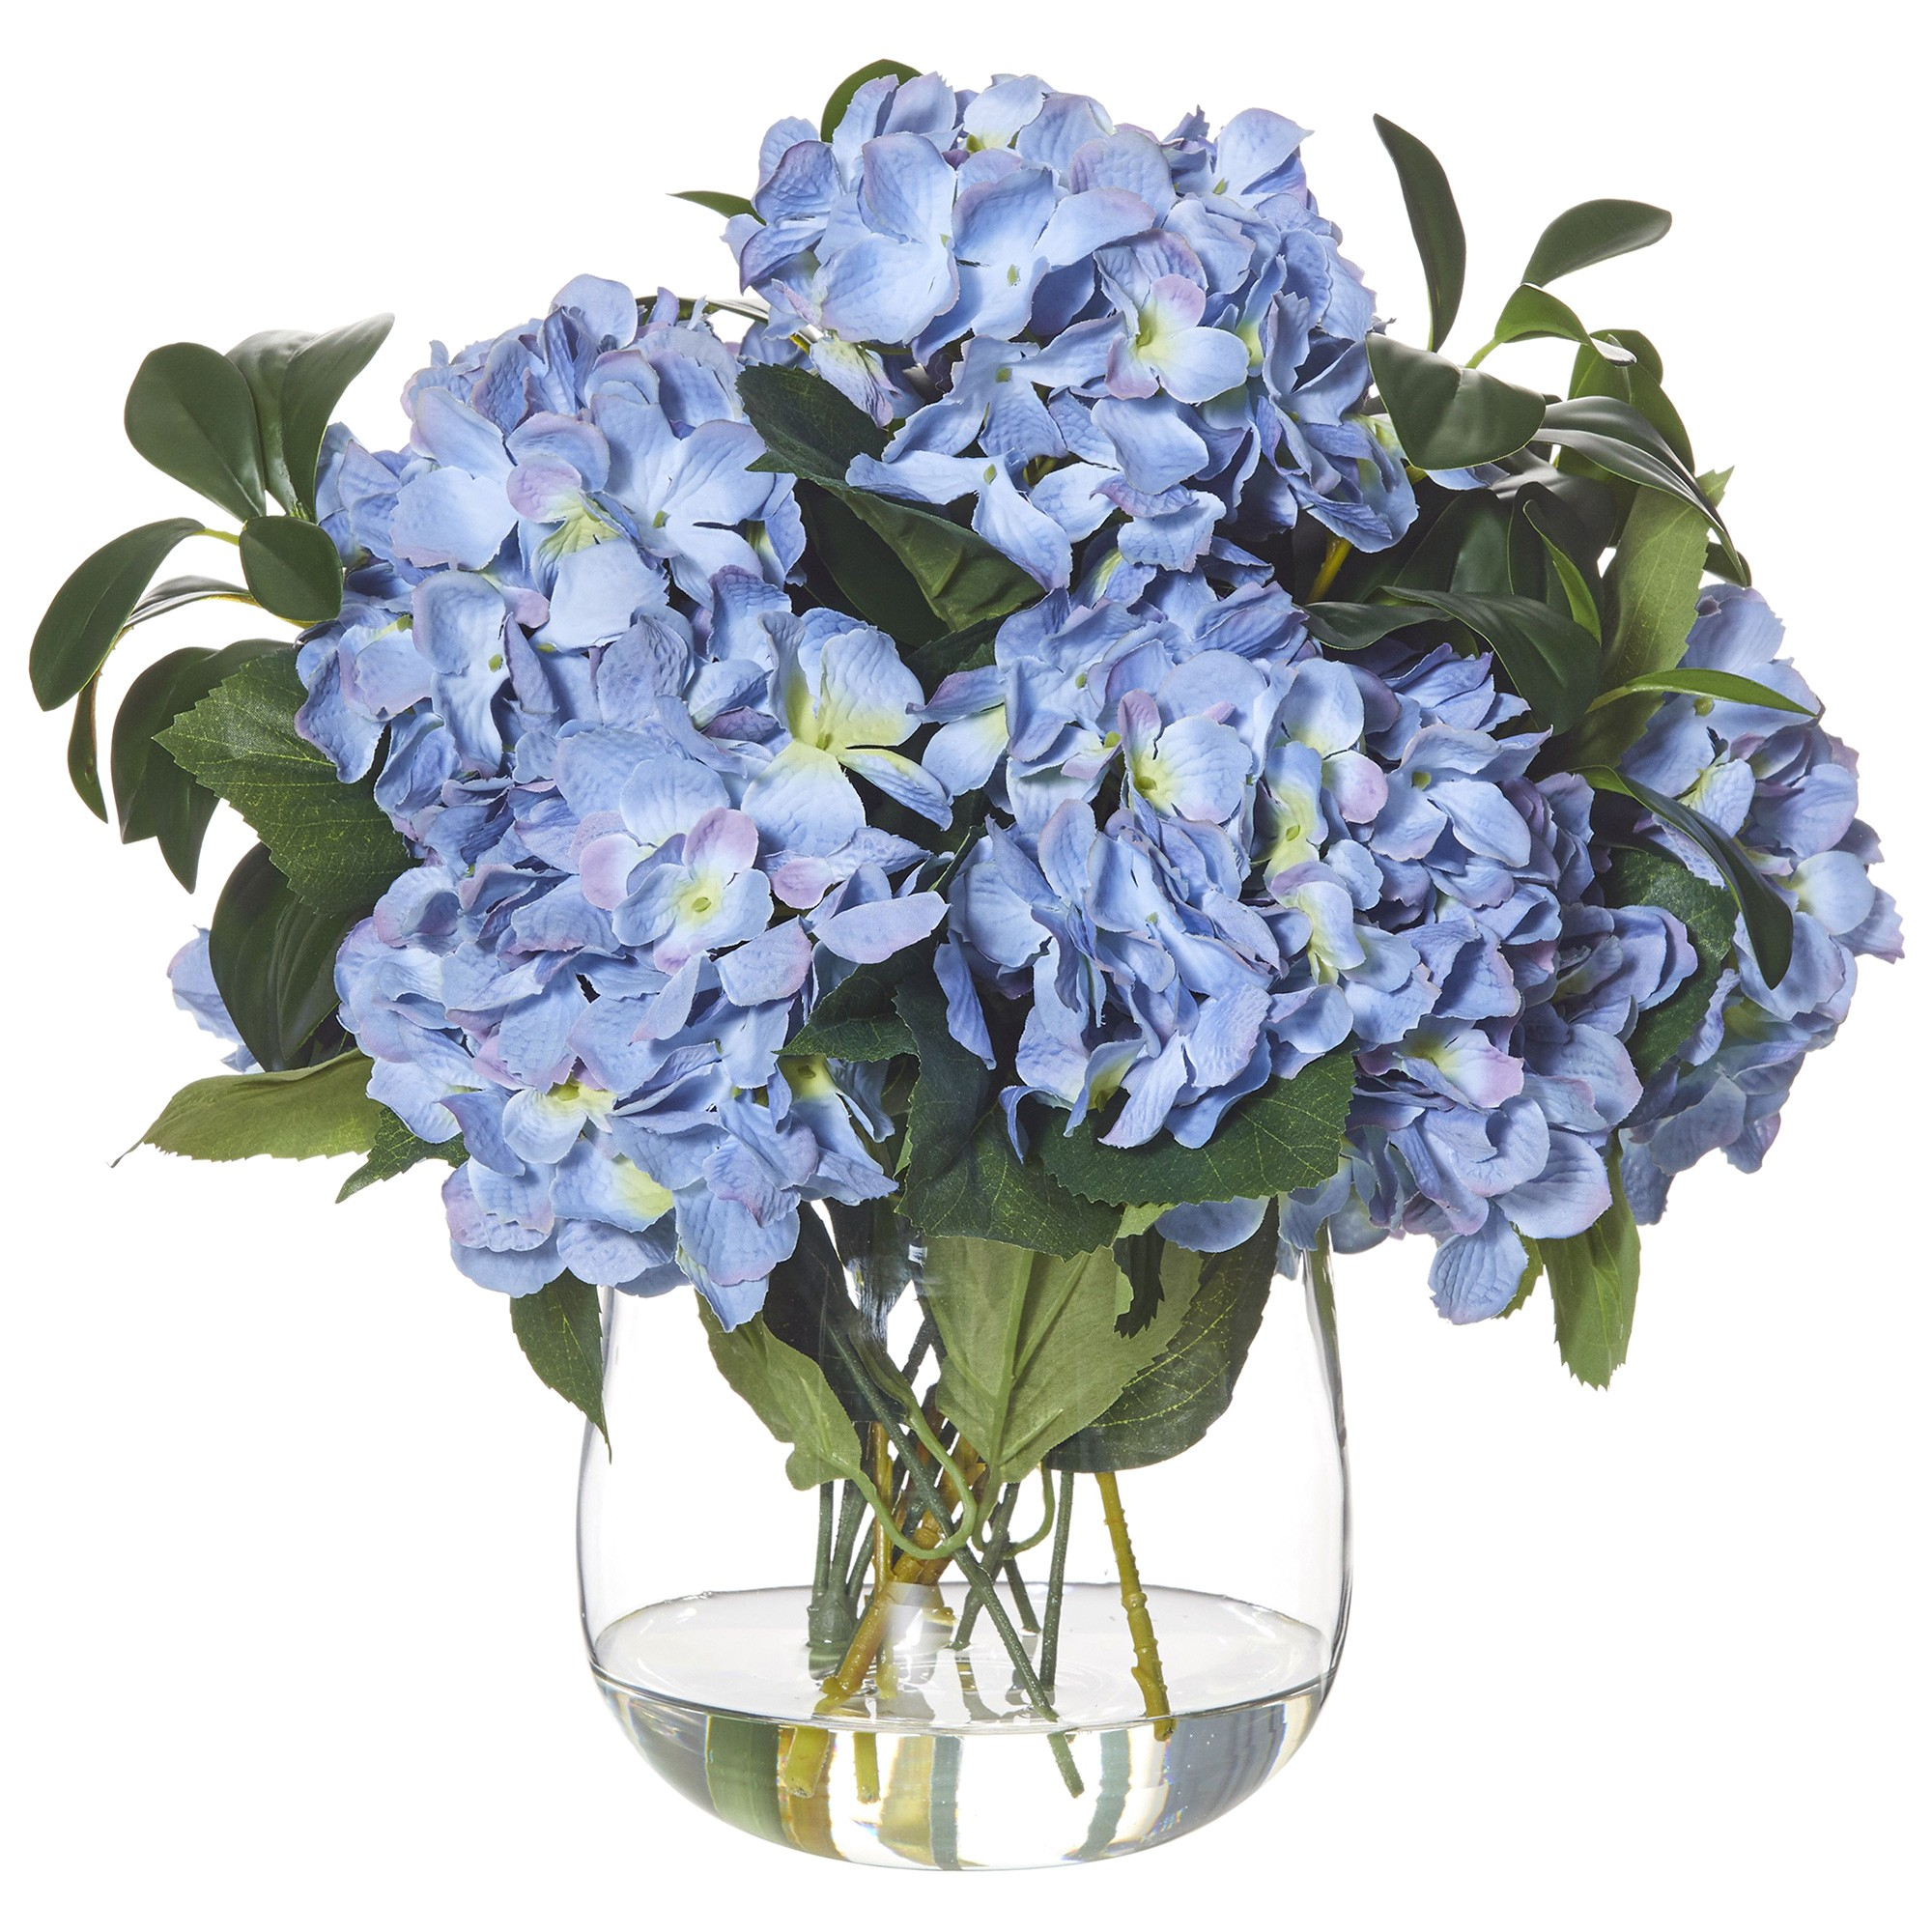 Artificial Hydrangea Mix in Greta Vase, Large, Blue Flower